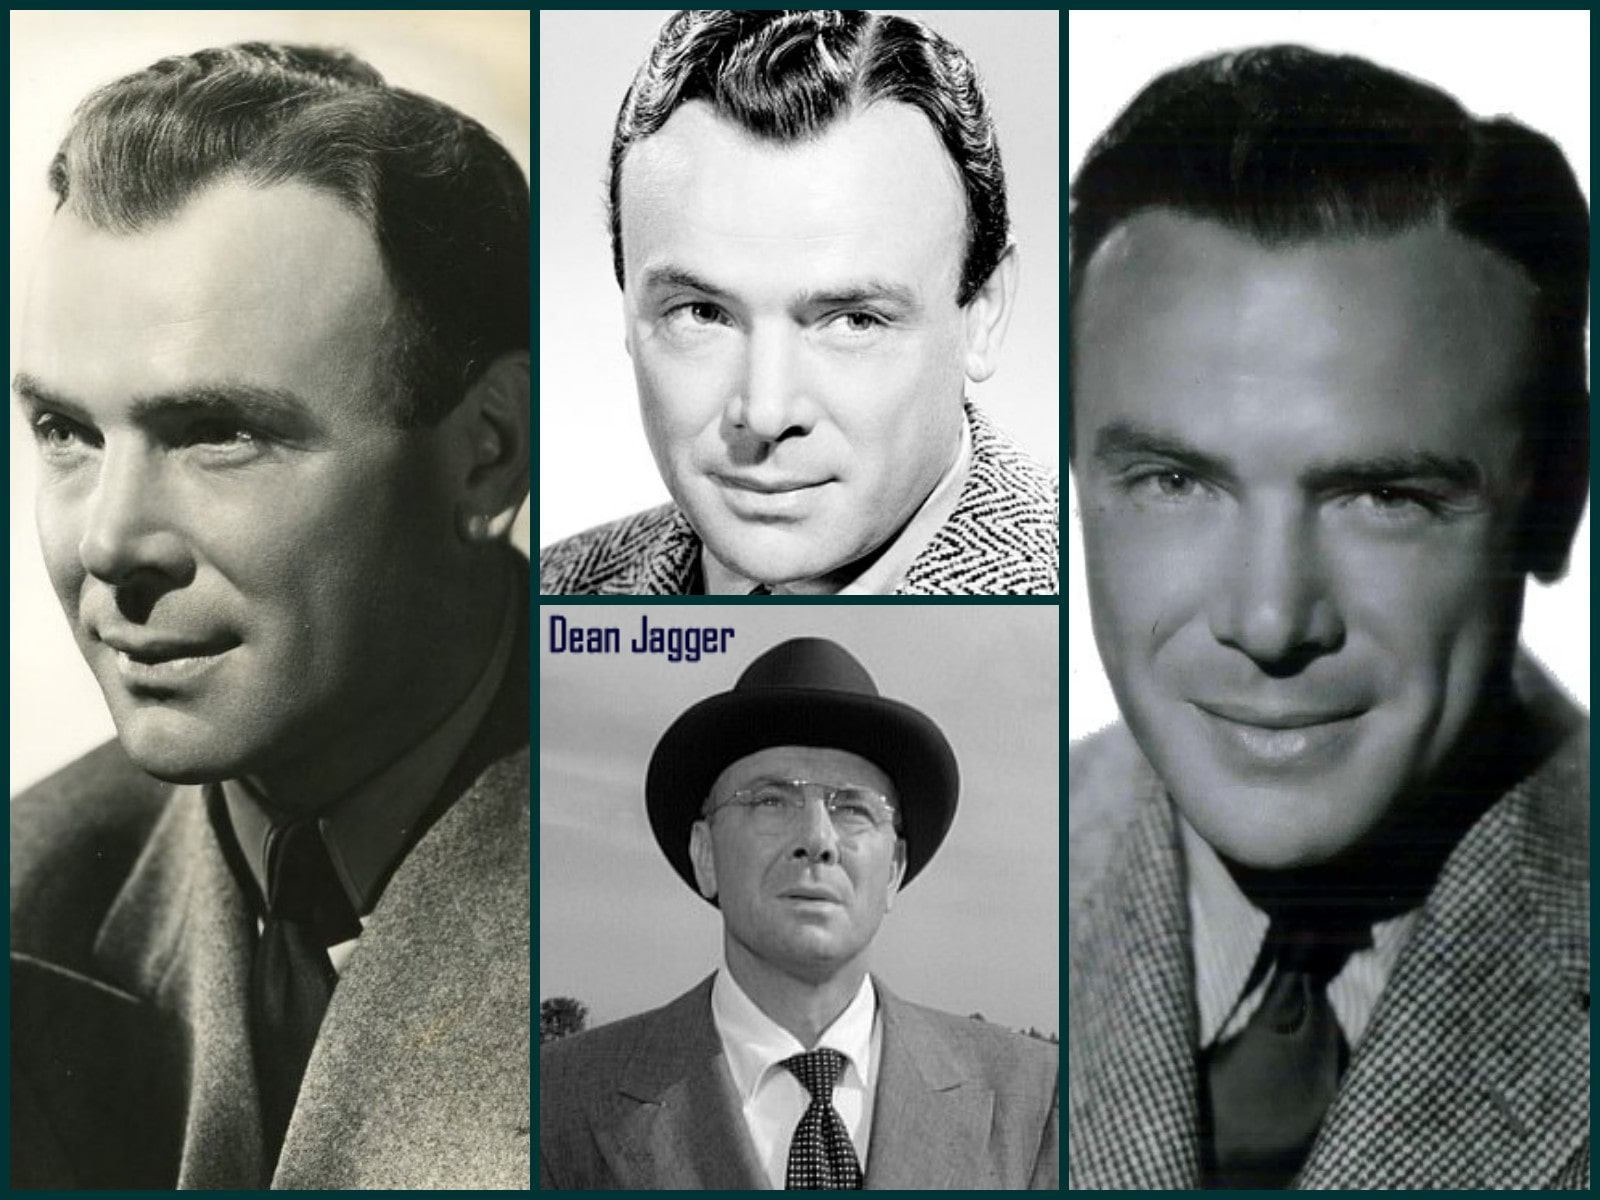 Ira Dean Jagger Background